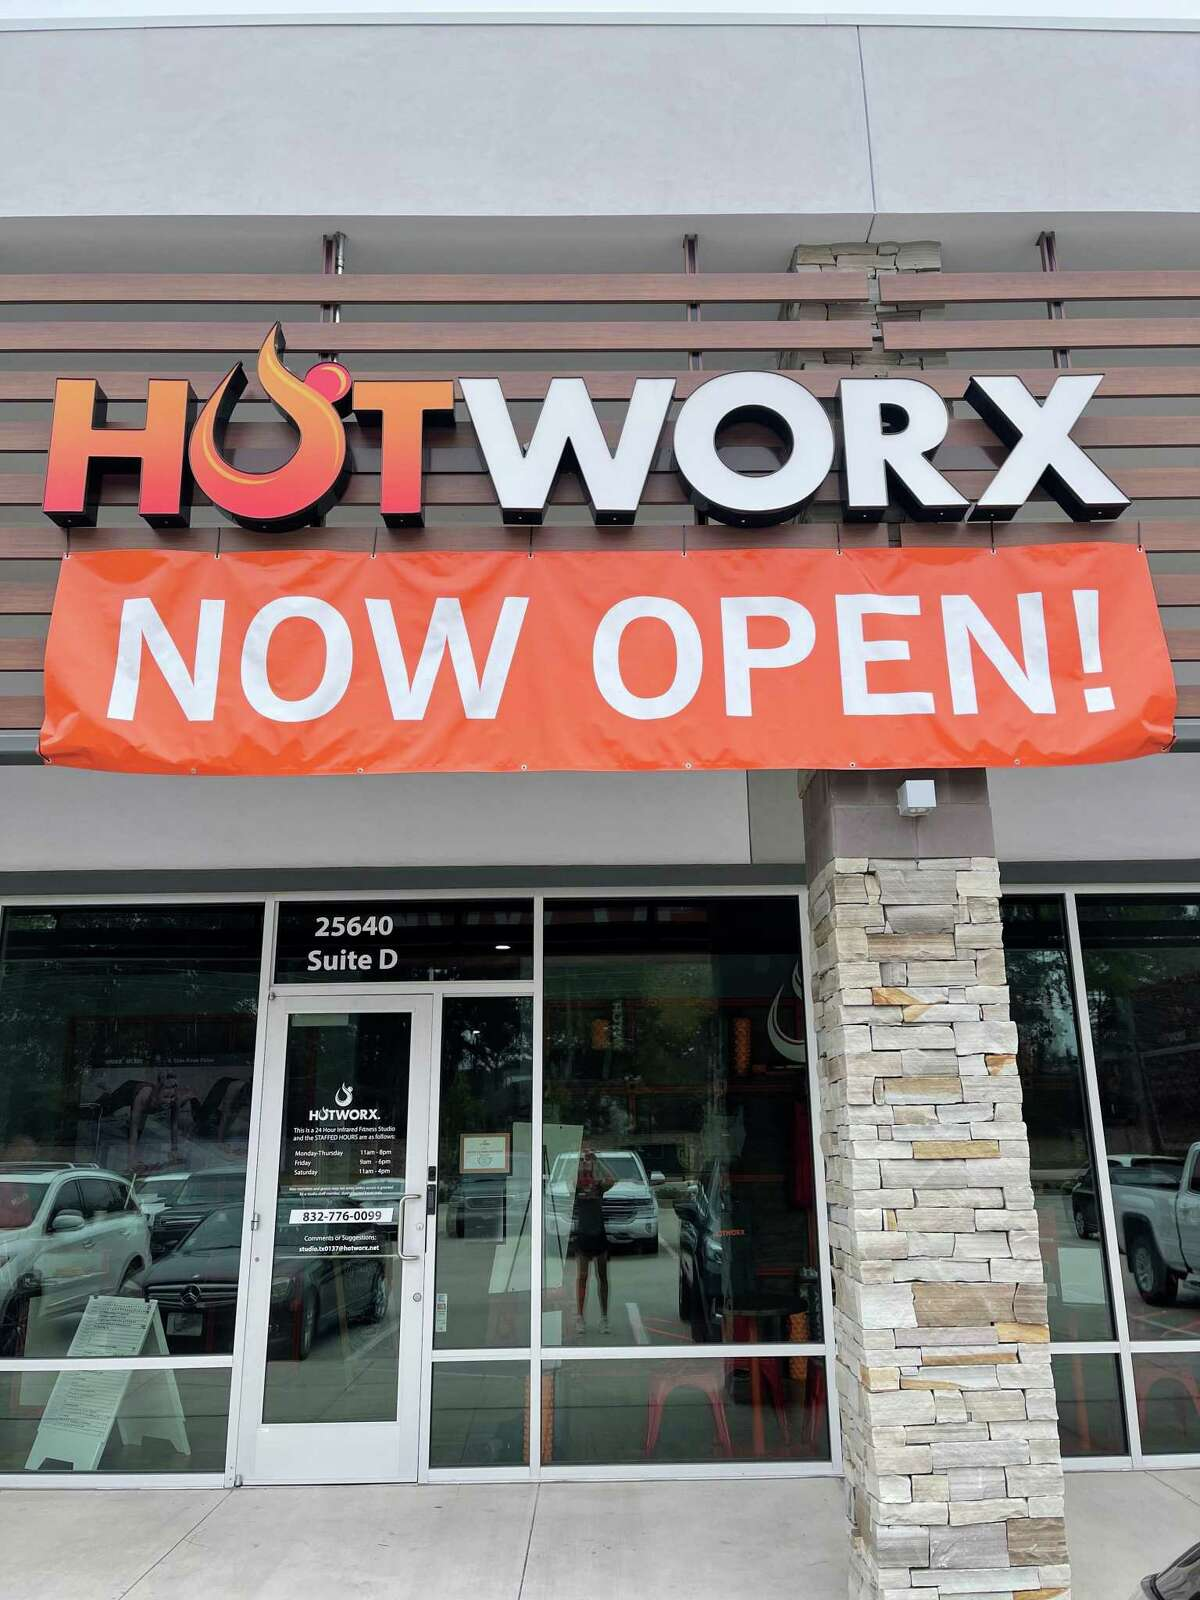 A new location of the Hotworx infrared sauna gym has opened in The Woodlands. The new emerging fitness trend features small saunas with workout gear inside such as exer-bikes, weights and other features. The heat helps with weight loss, circulation and other health issues, officials said. The gym offers pre-paid monthly or full year memberships, a payment plan based membership and three trial options for one-day, four days and eight days of workouts.